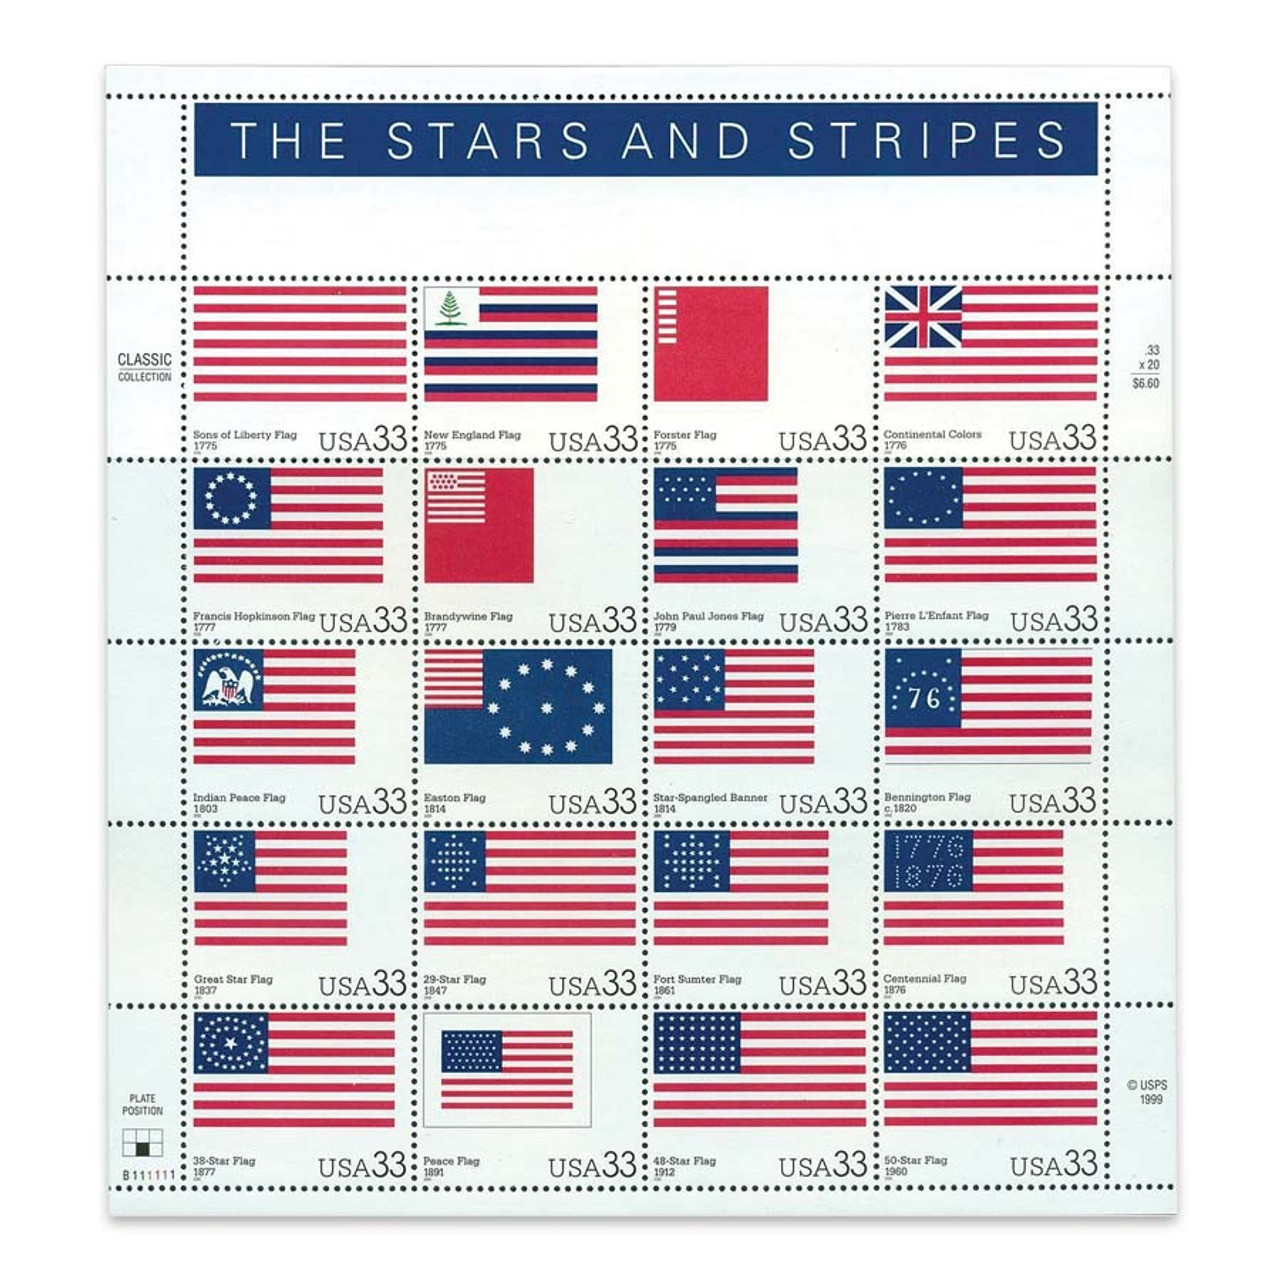 2000 Stars and Stripes Stamp Sheet